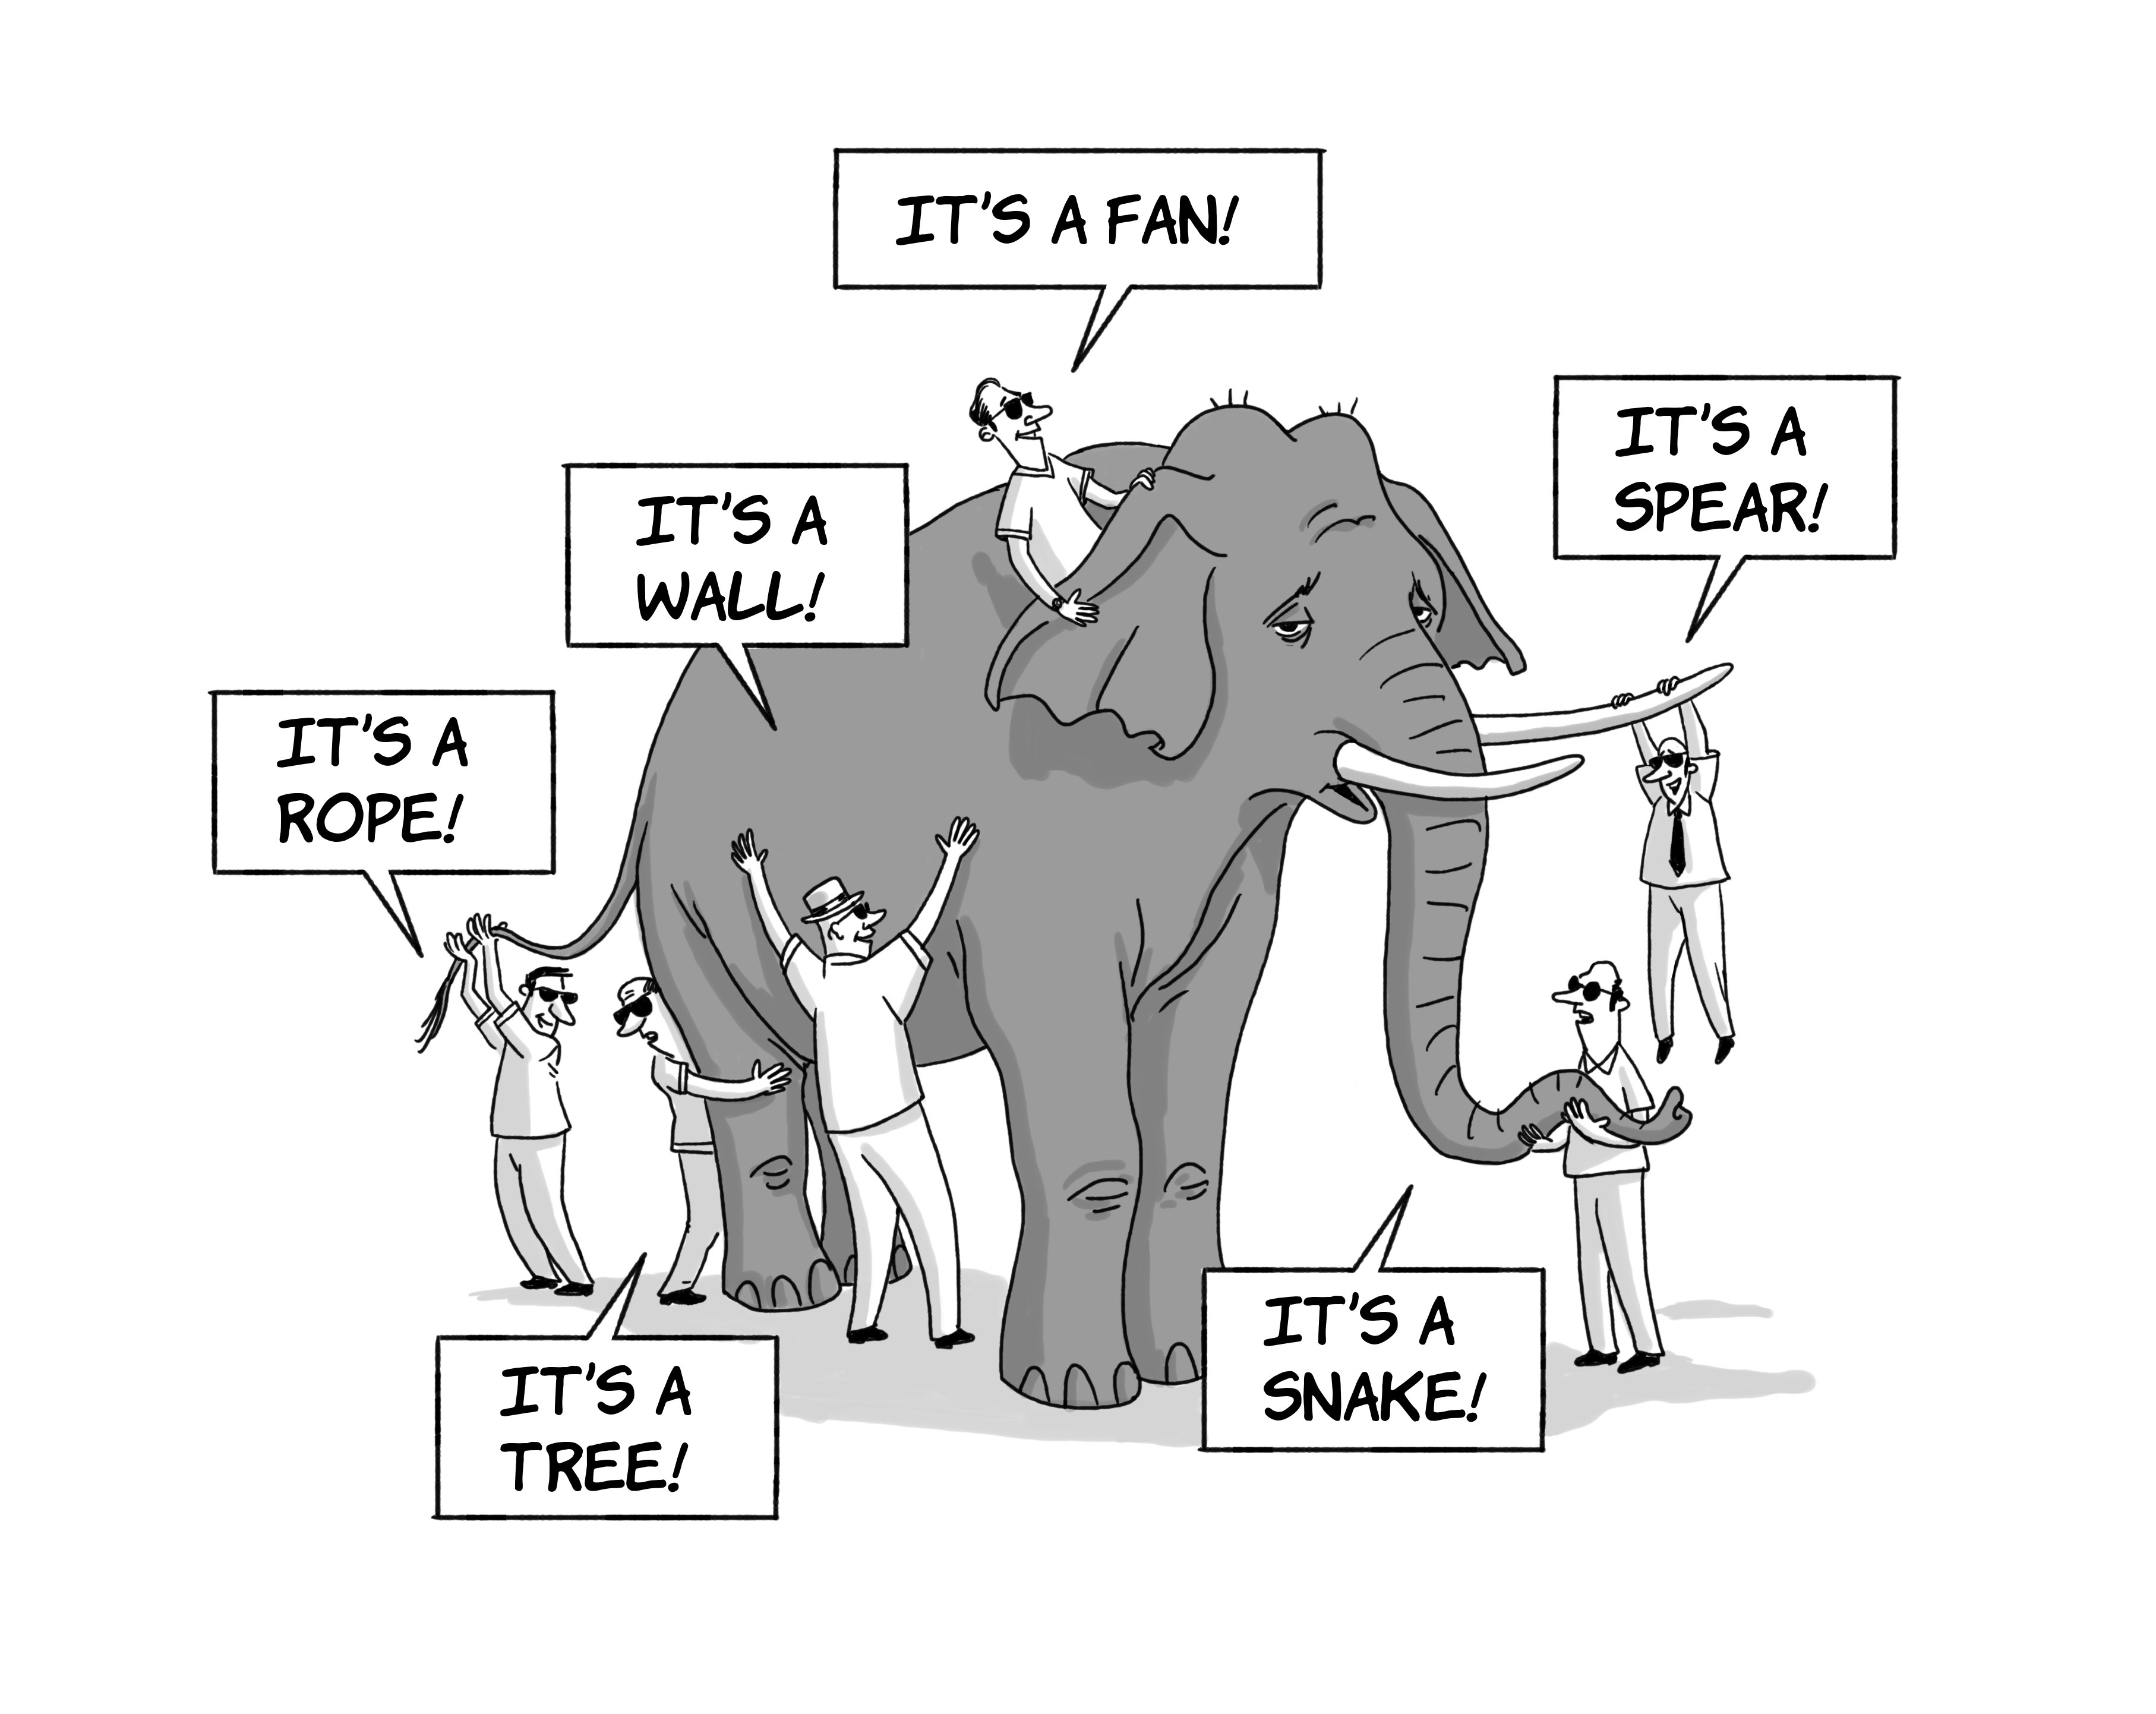 Illustration: Parable of the Blind Men and the Elephant